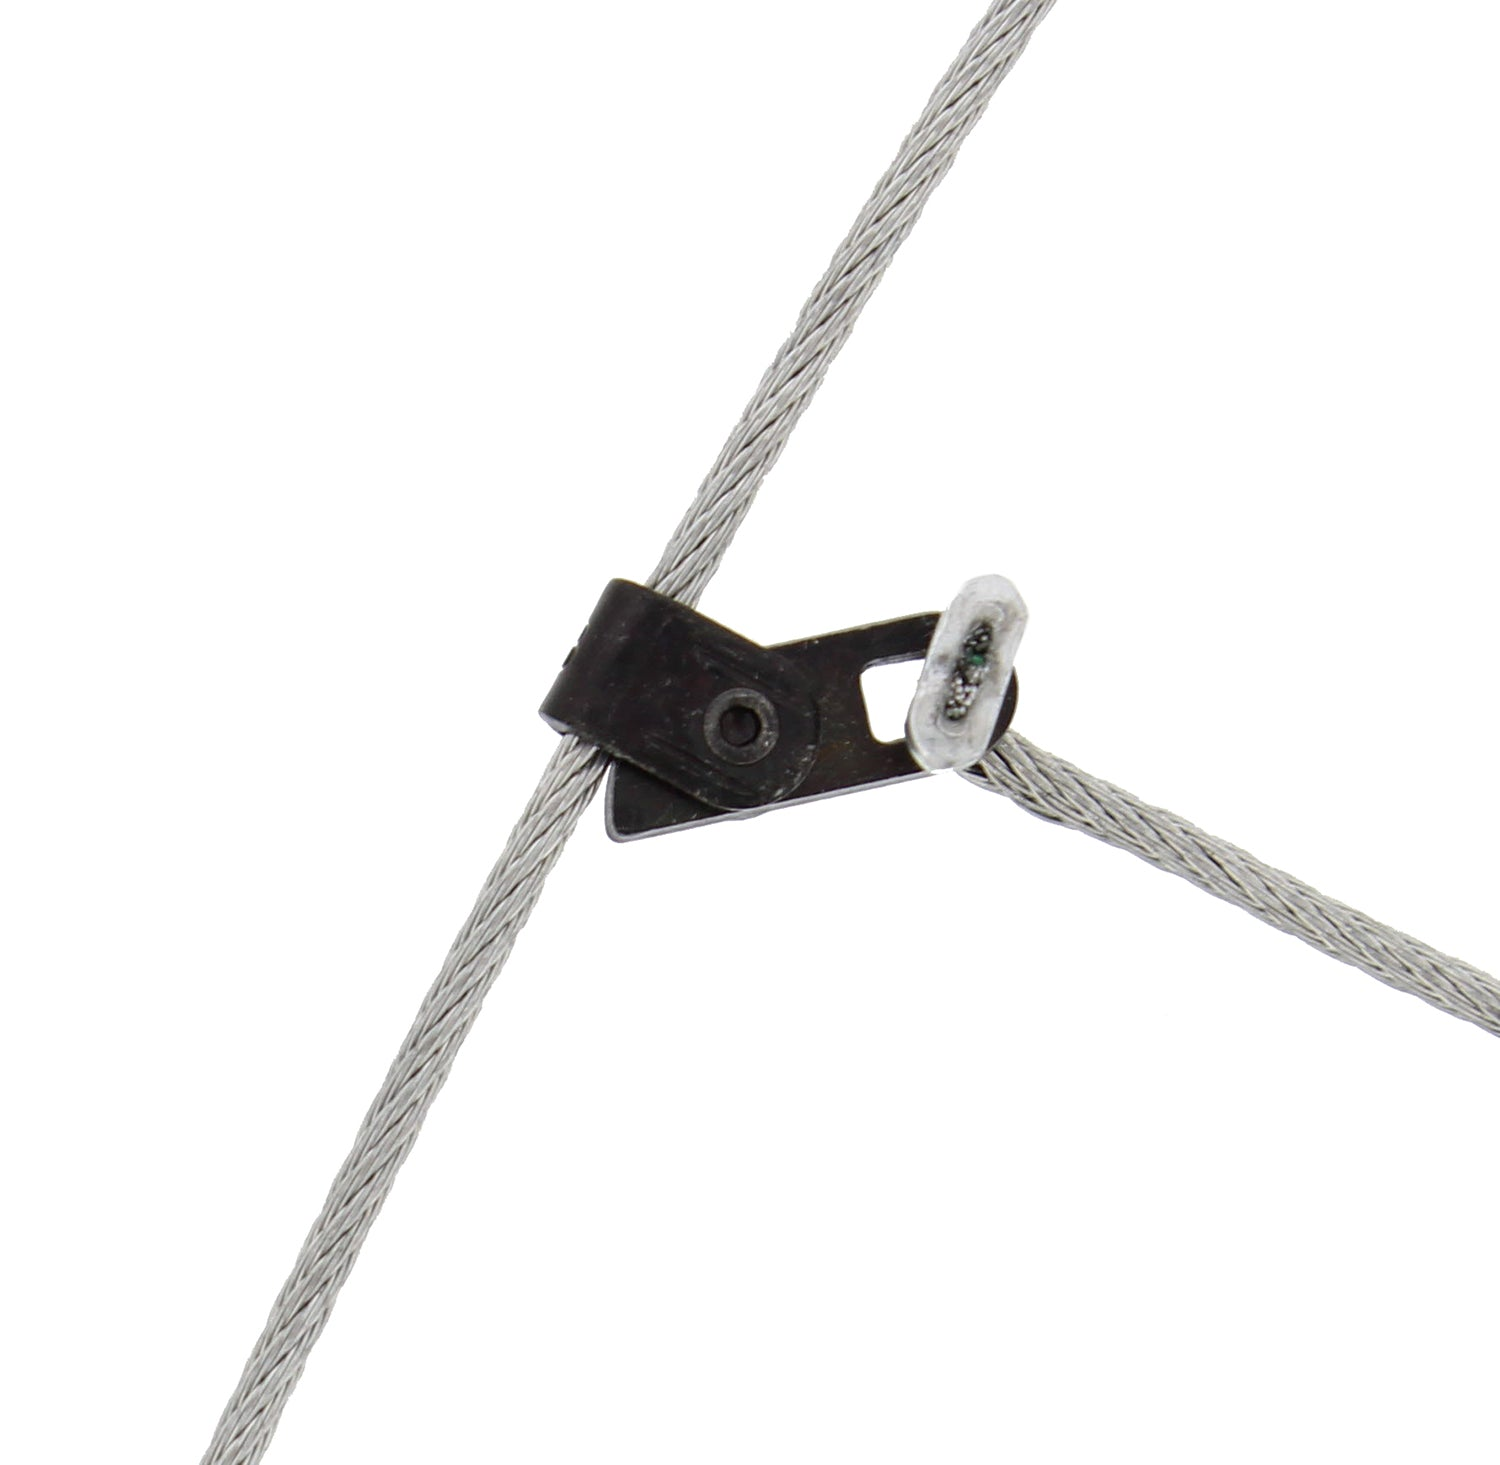 84� Inch Hog Snare Cable 4-Pack with Camlock